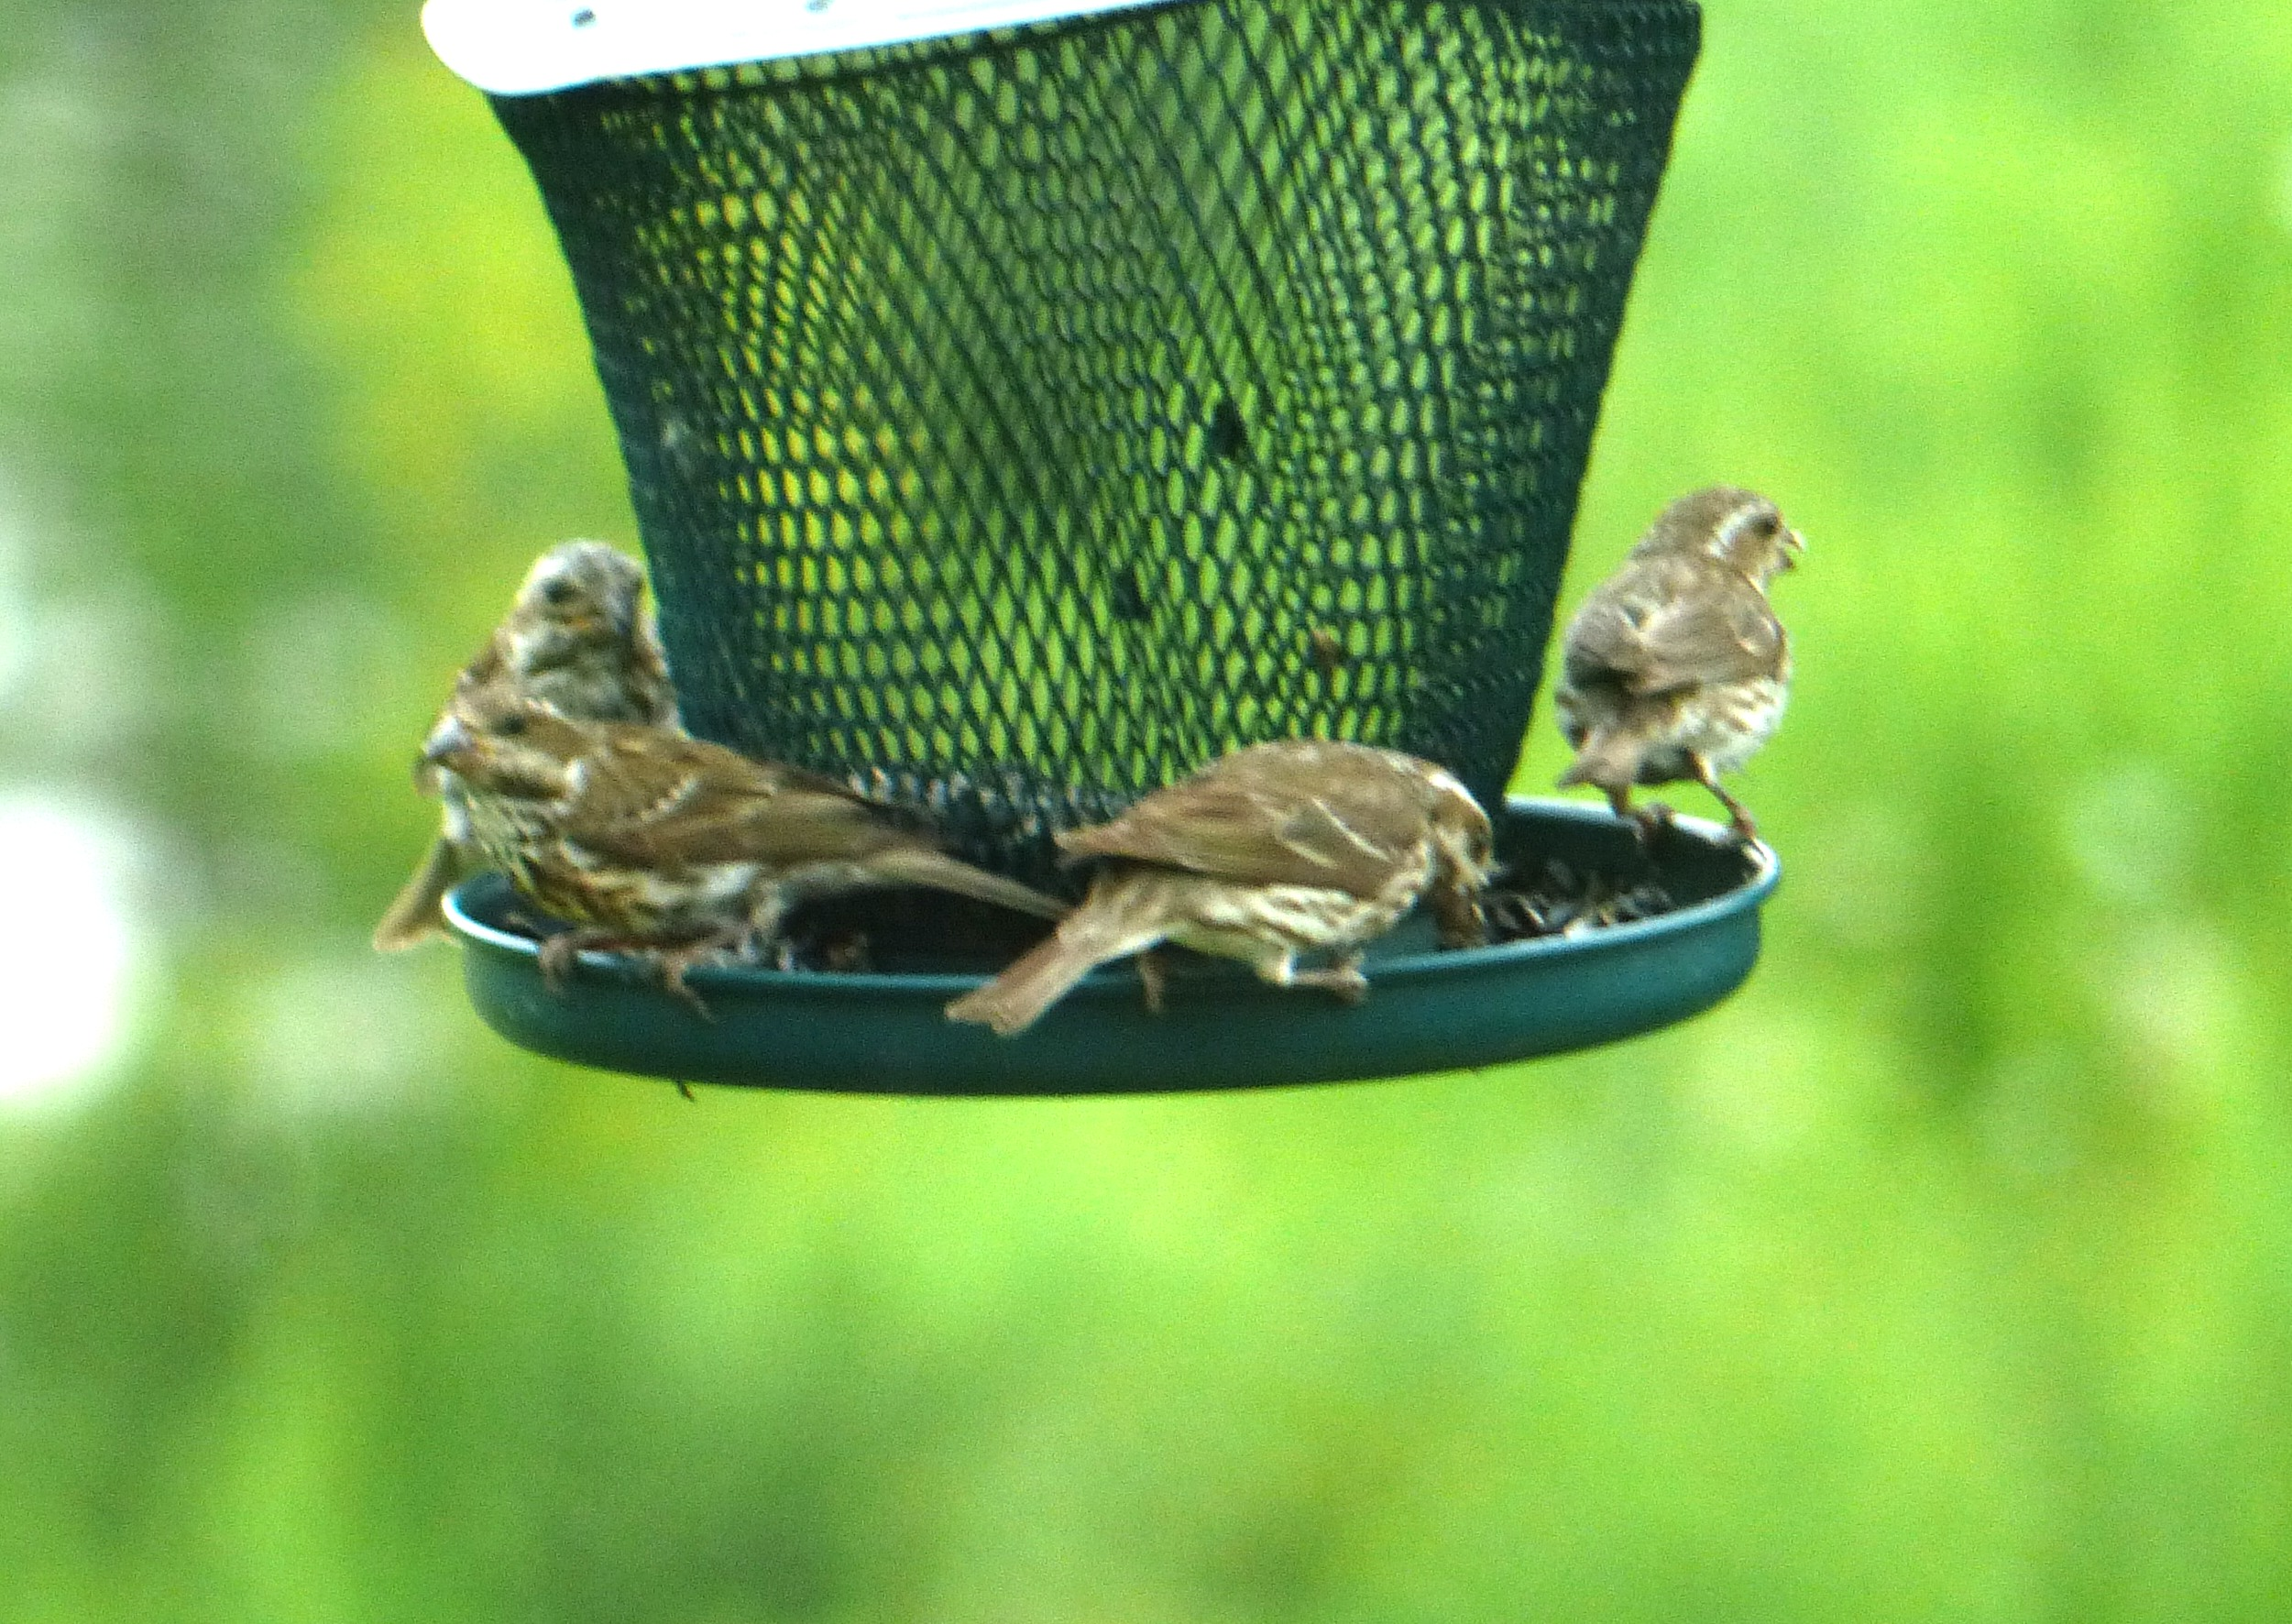 August 5, 2014 – Fledglings | Nature's Charms